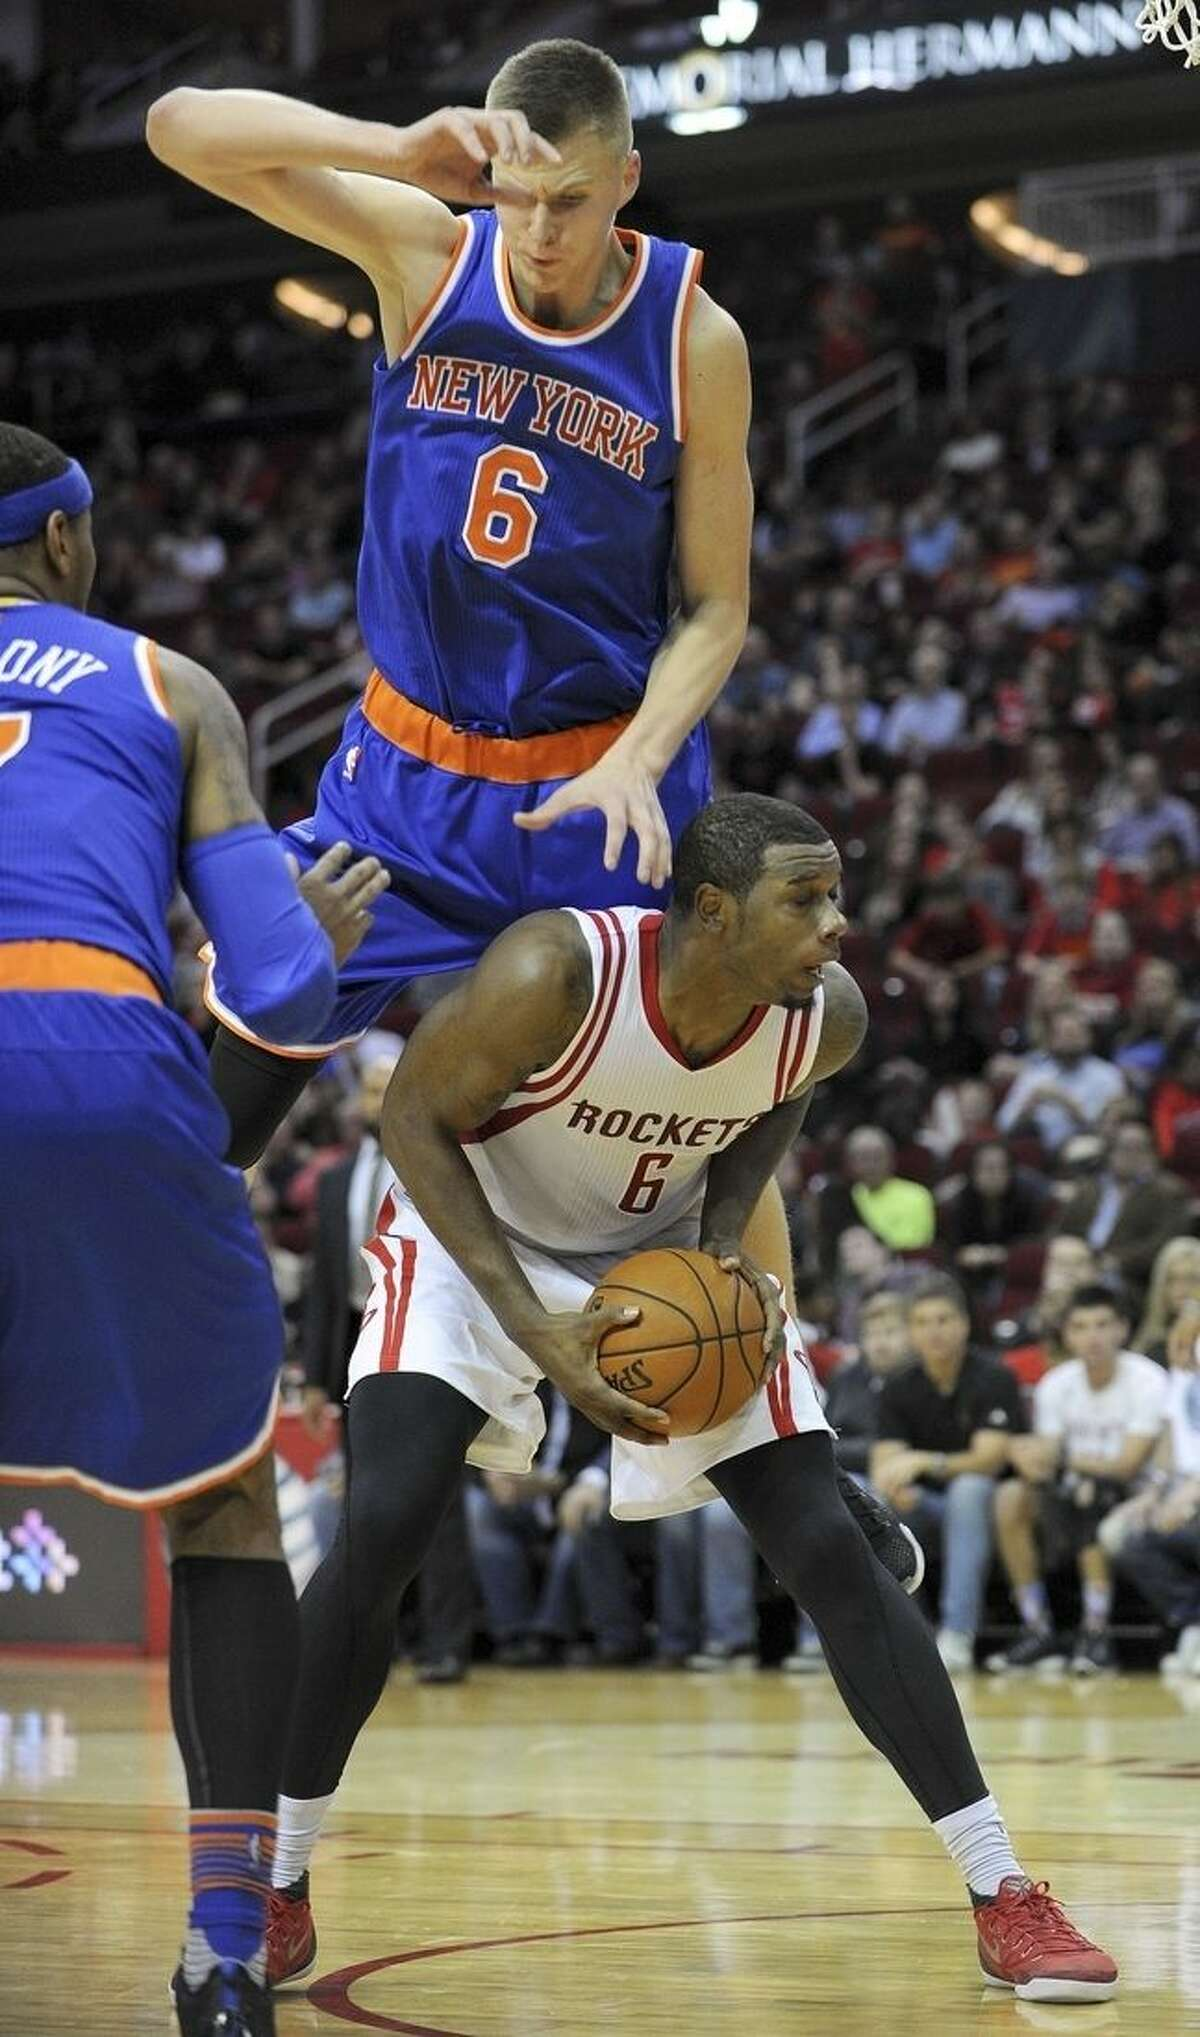 Houston Rockets forward Terrence Jones, bottom, drives to the basket as New York Knicks forward Kristaps Porzingis, top, defends in the second half of an NBA basketball game, Saturday, Nov. 21, 2015, in Houston. (AP Photo/Eric Christian Smith)